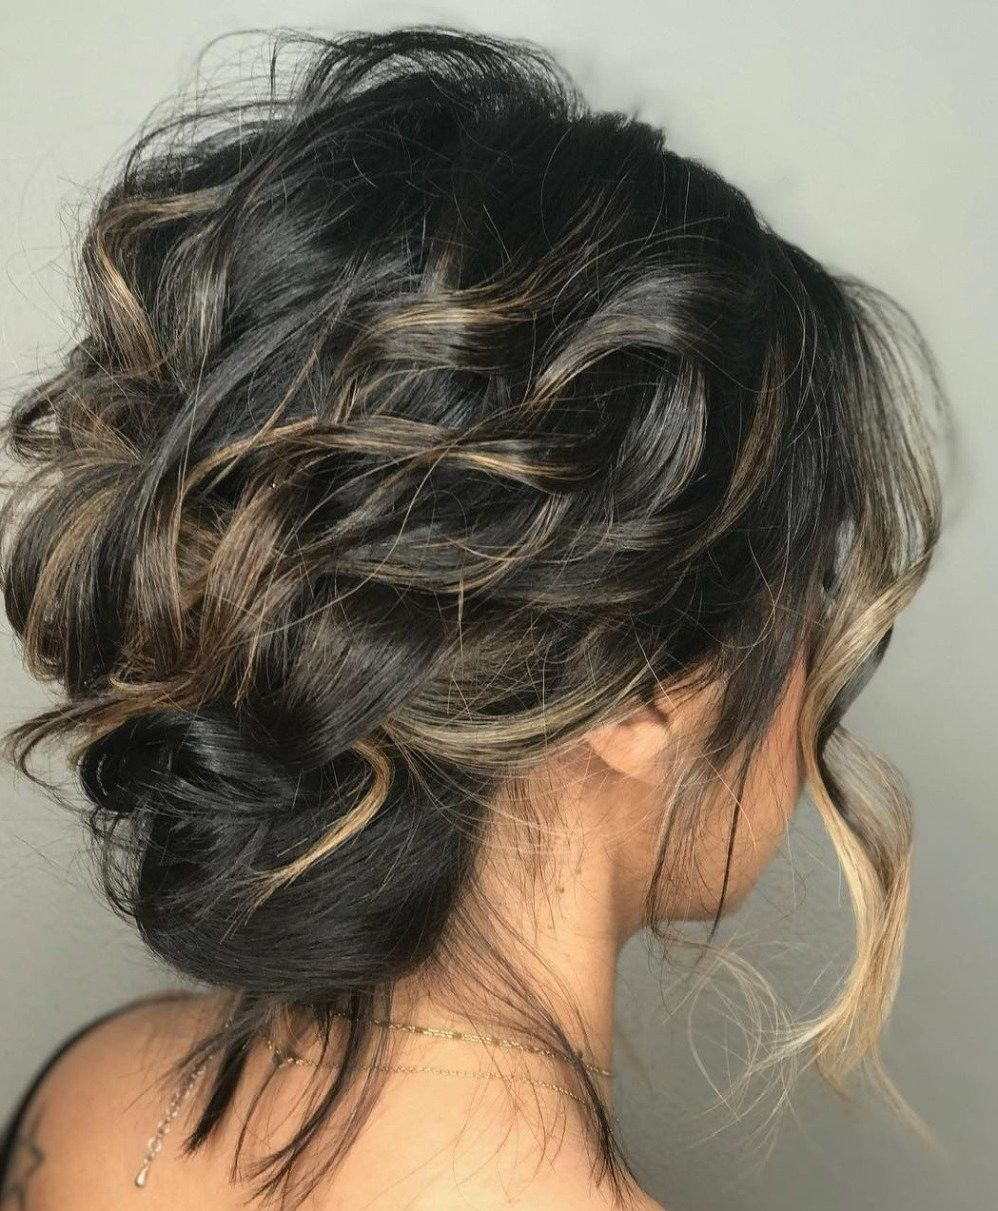 13+ Medium length hairstyles for thick hair updo ideas